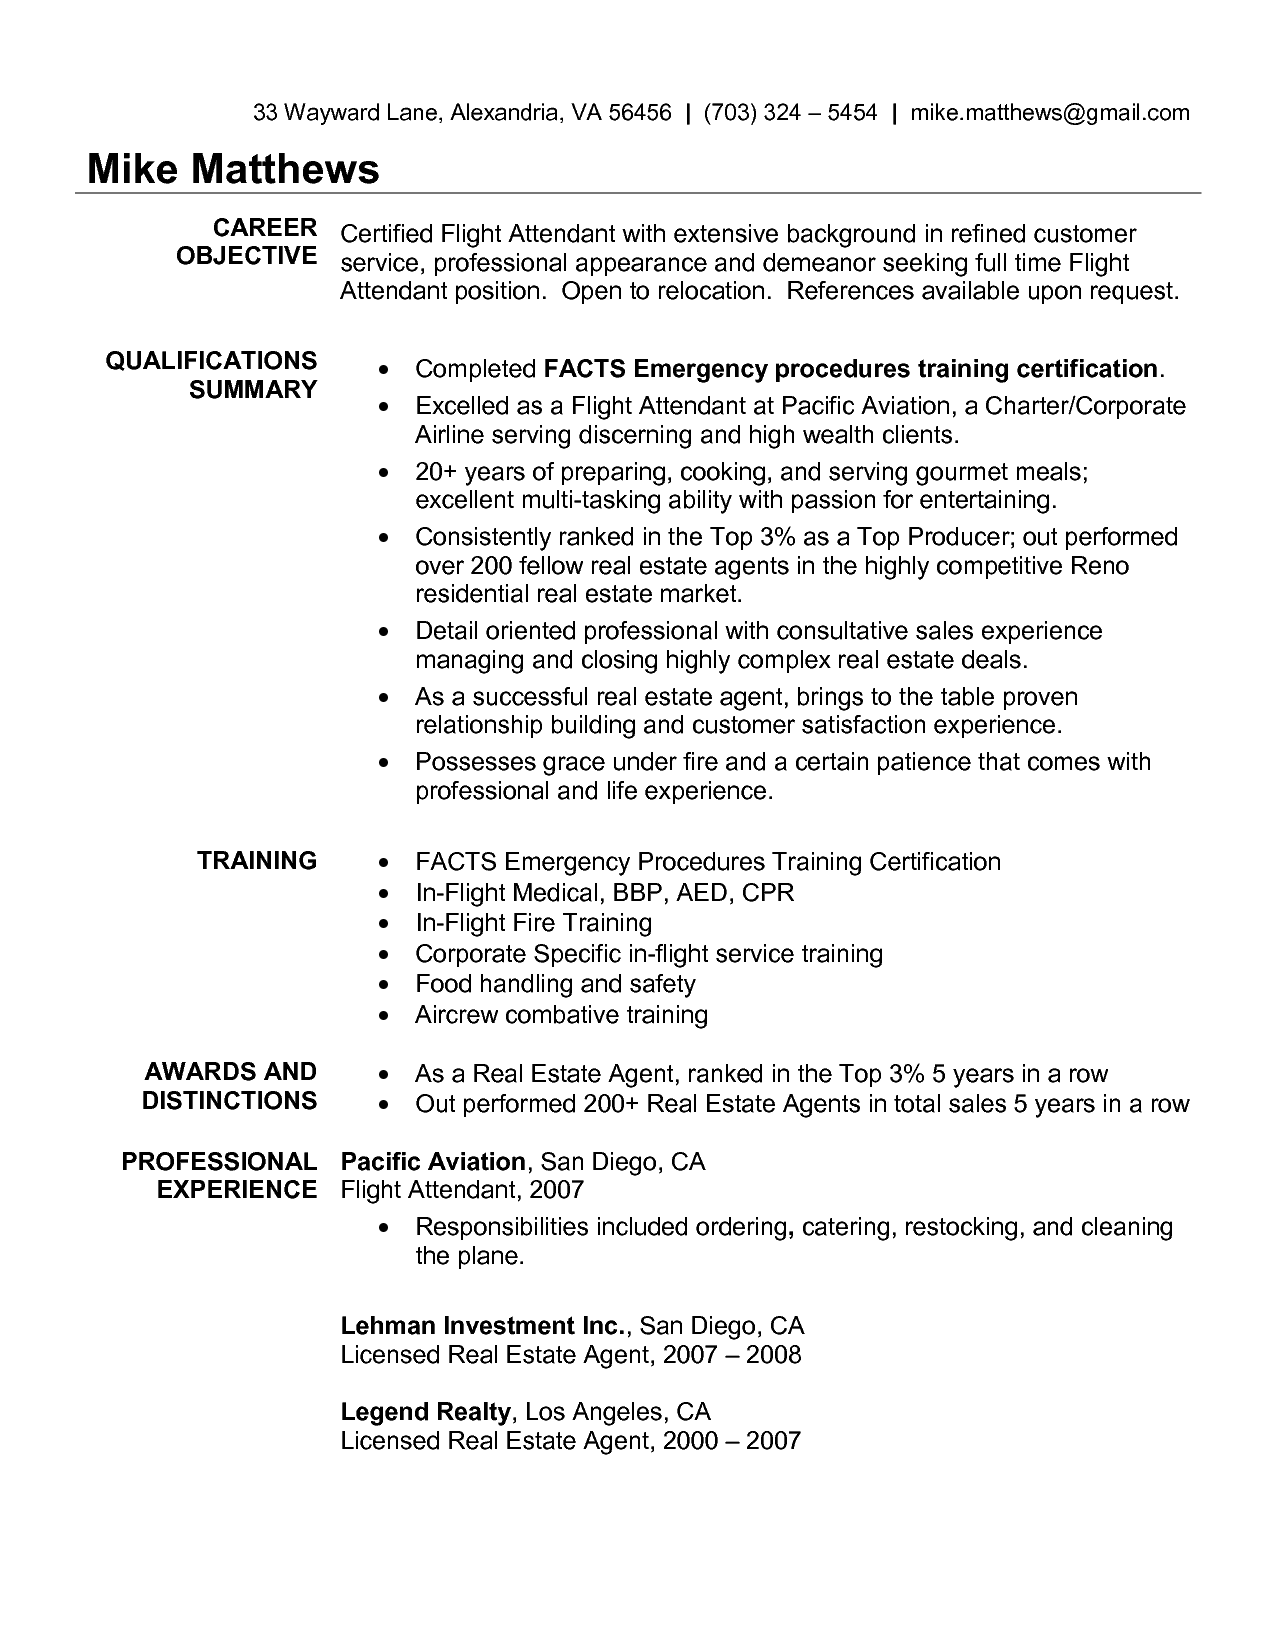 Job Objective On Resume Pinkerry C On Applying For Jobs  Pinterest